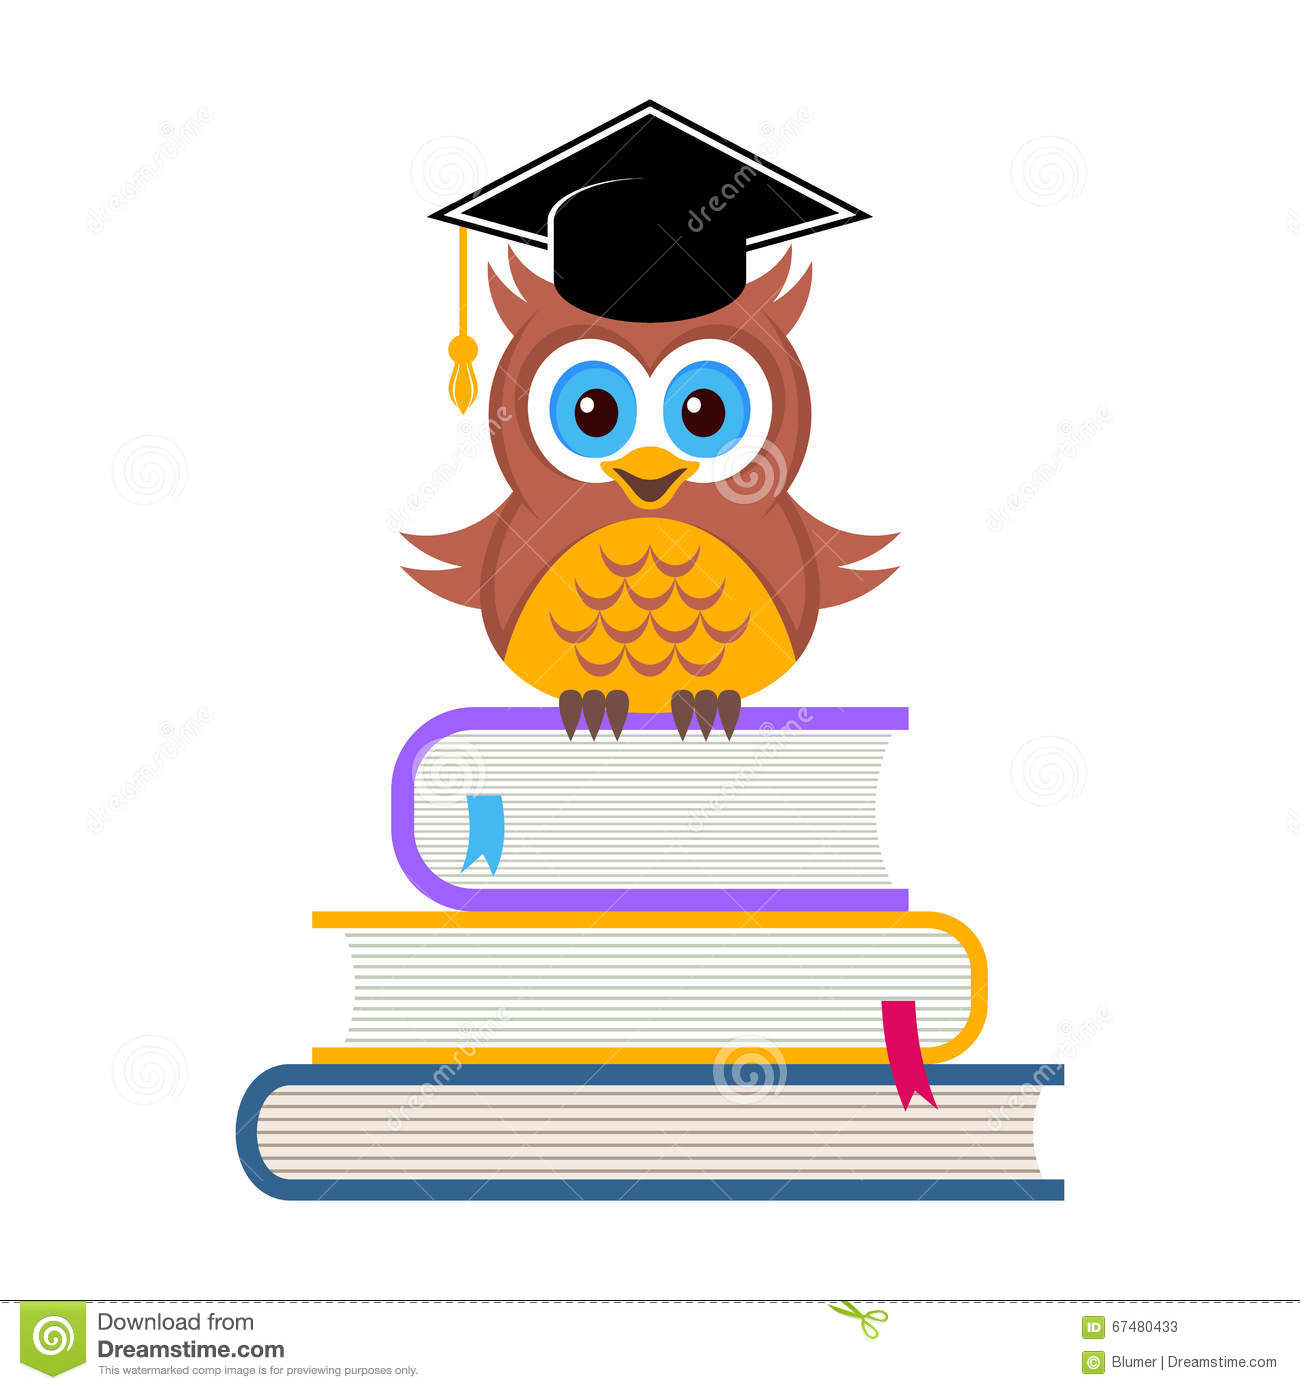 Cute Owl With Graduation Hat Stock Vector - Image: 67480433